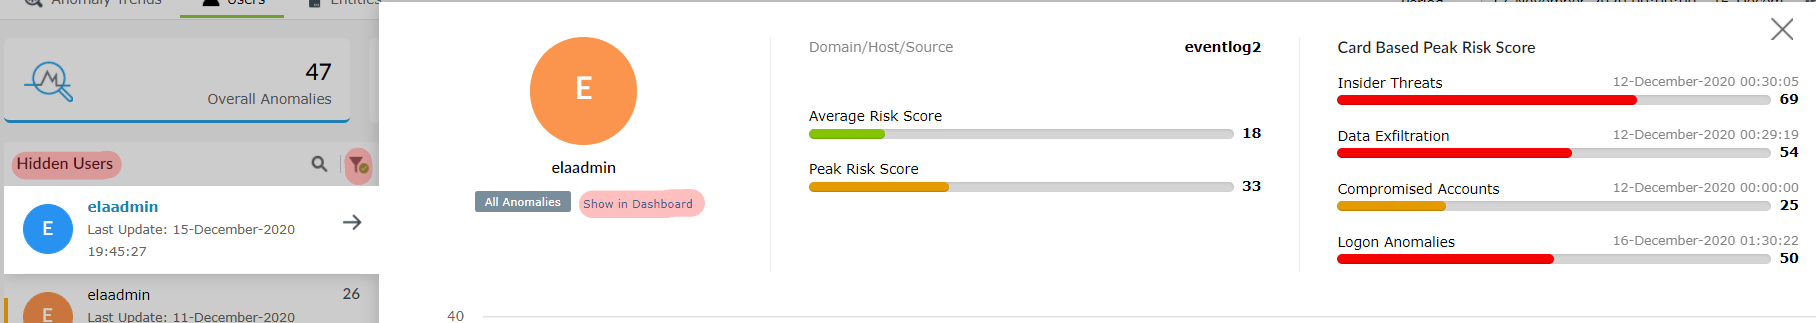 User's anomaly activities and risk scores